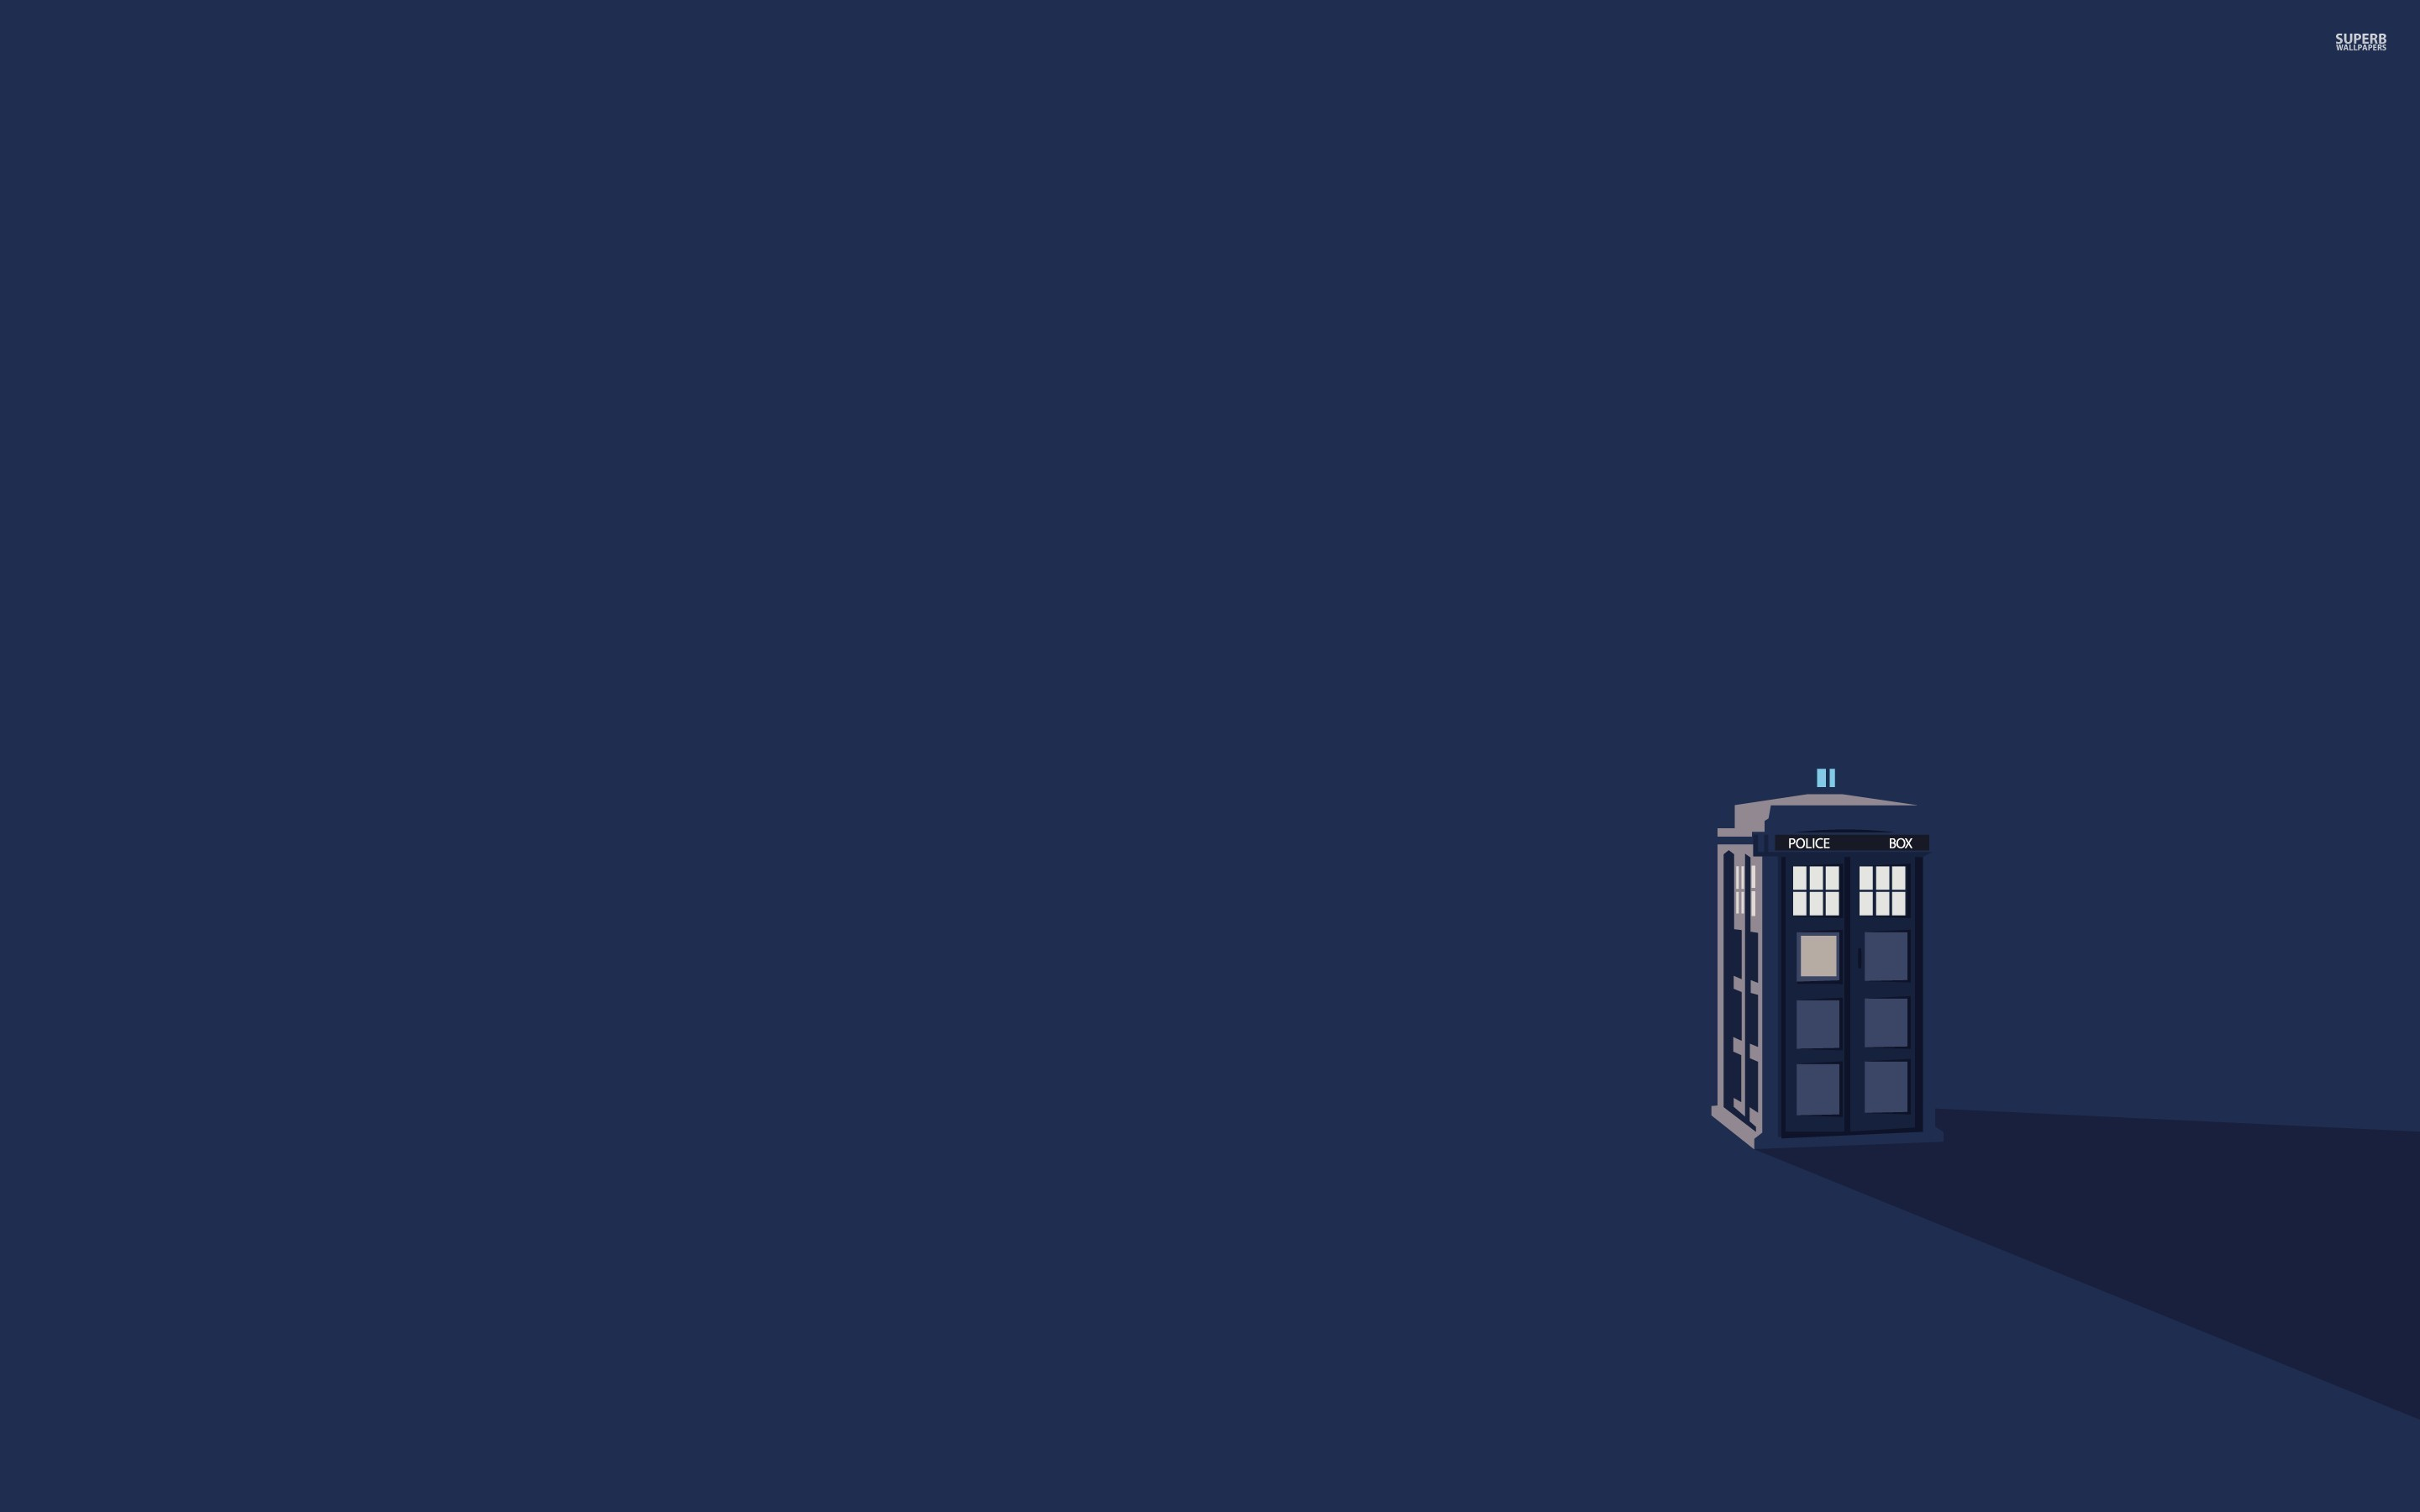 Doctor Who Wallpaper Background